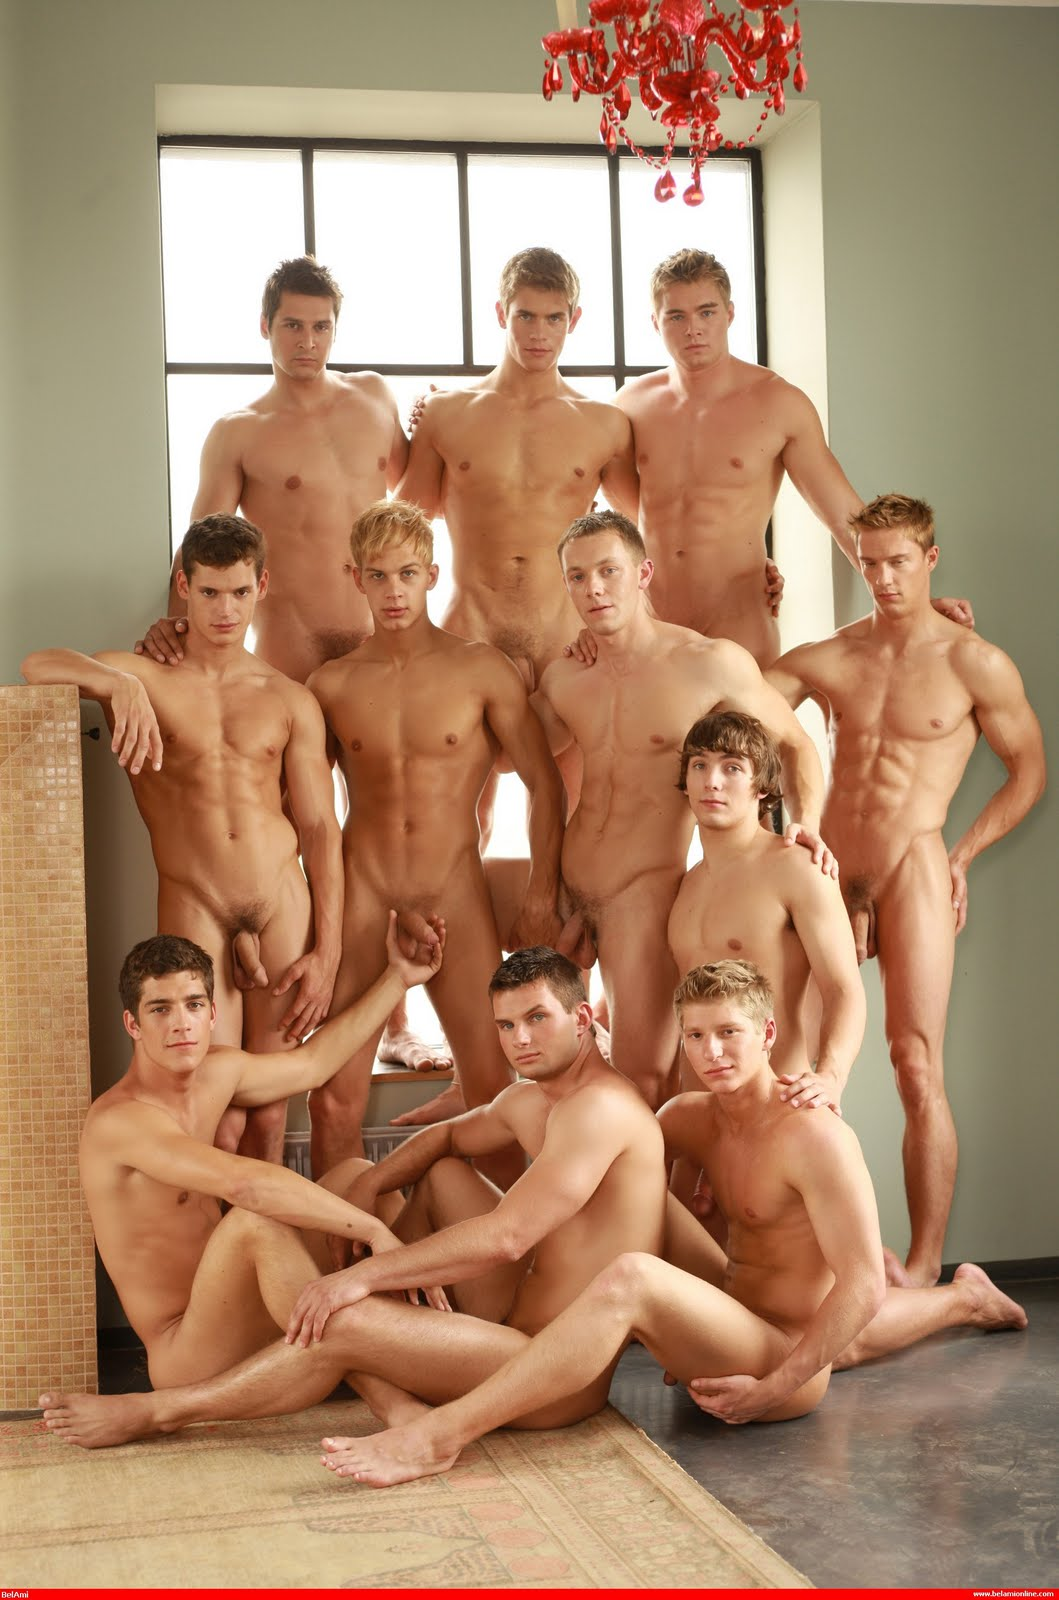 Naked groups